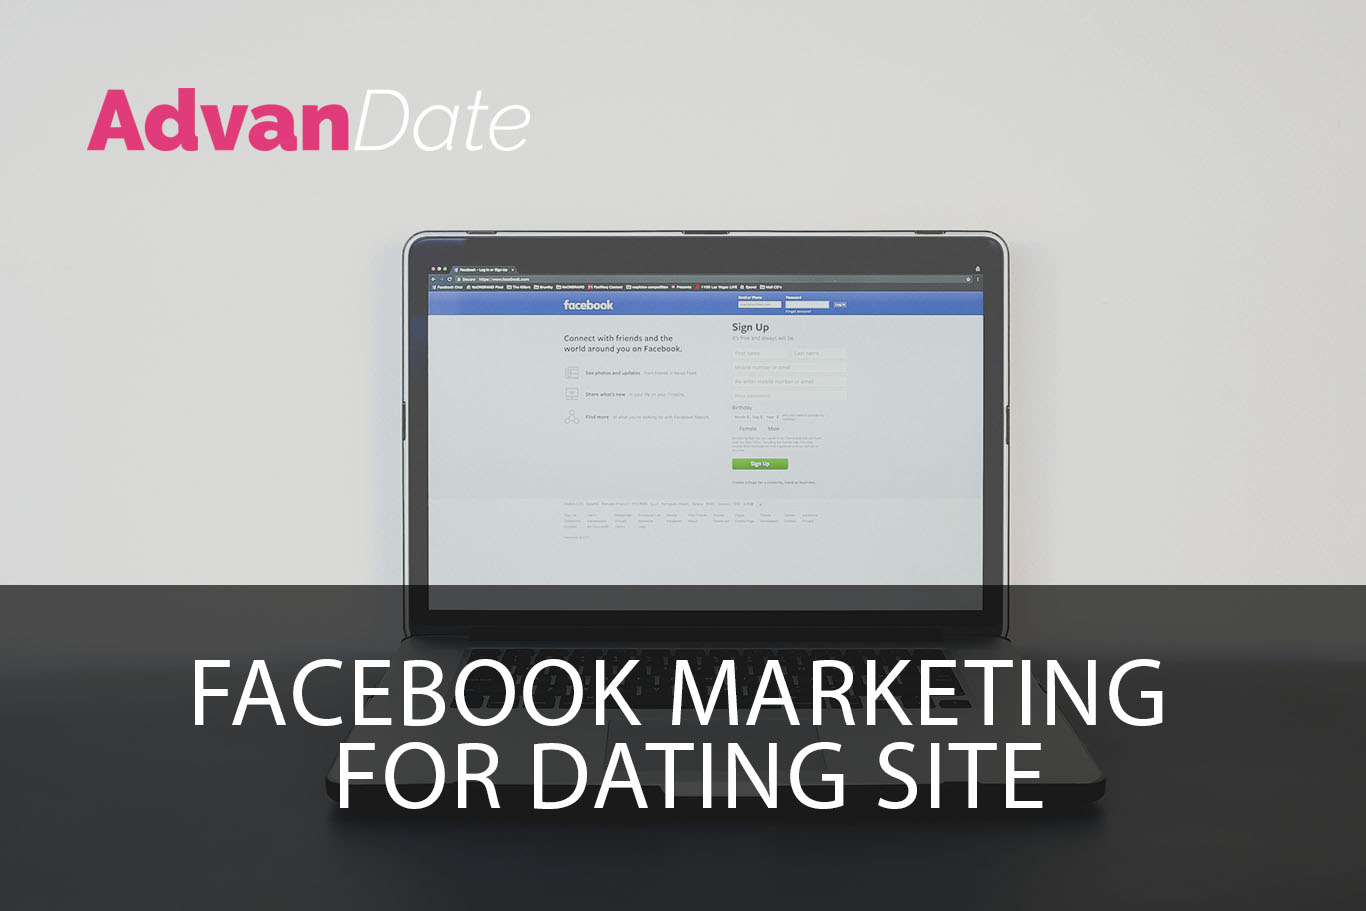 Facebook Marketing for dating site